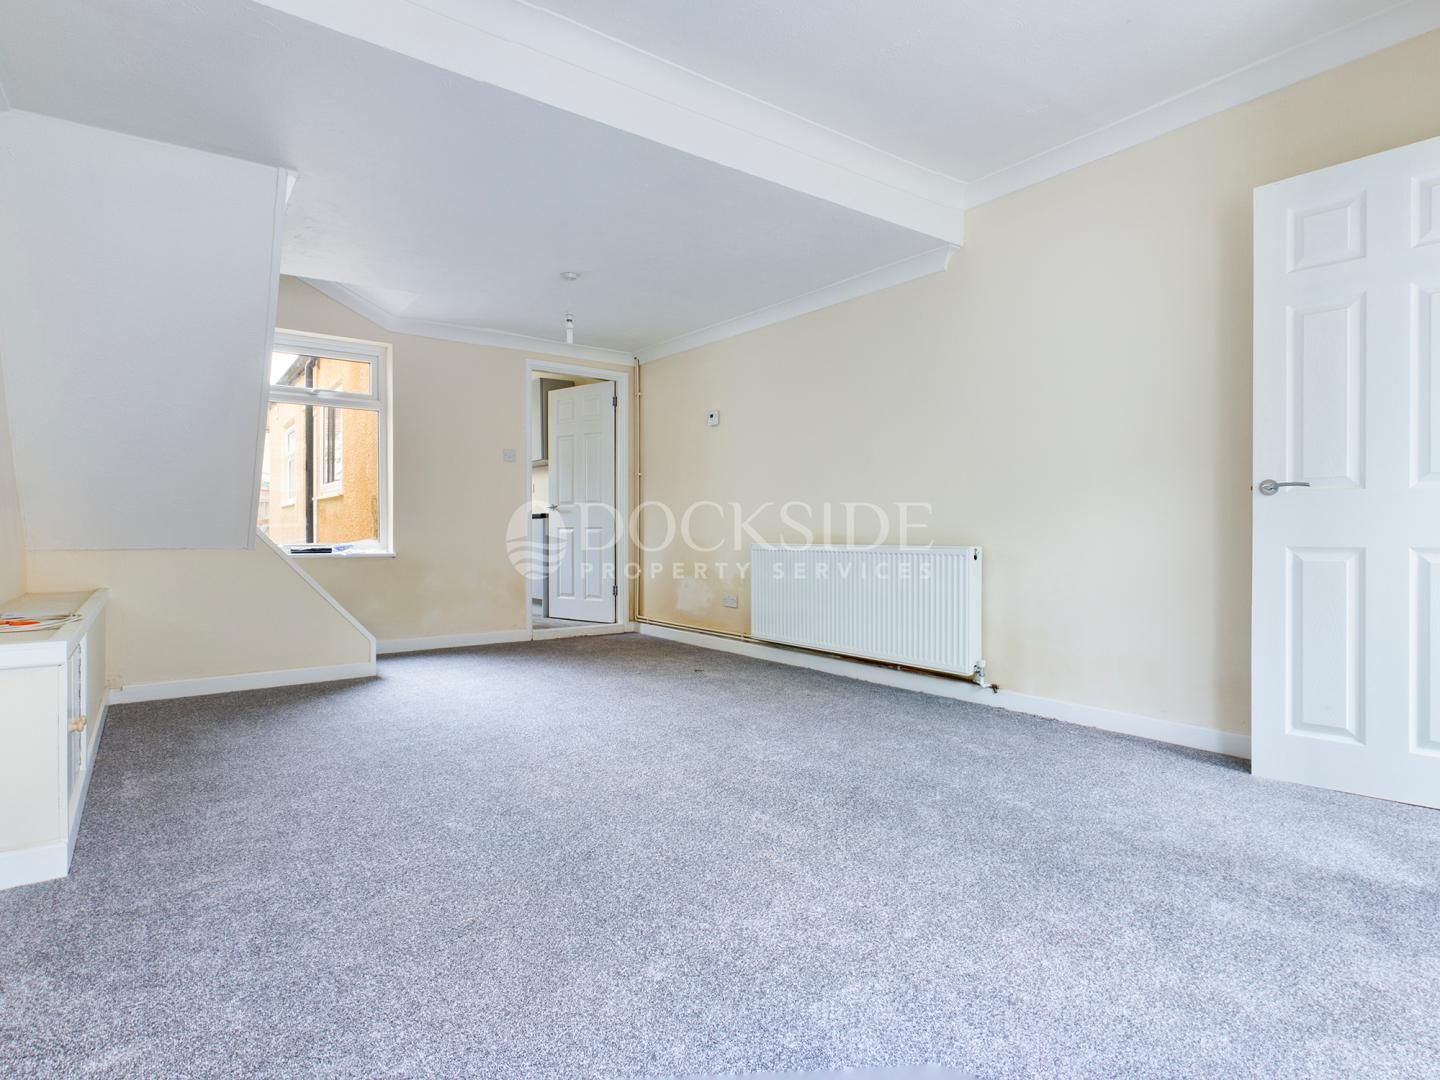 2 bed house to rent in James Street, ME12